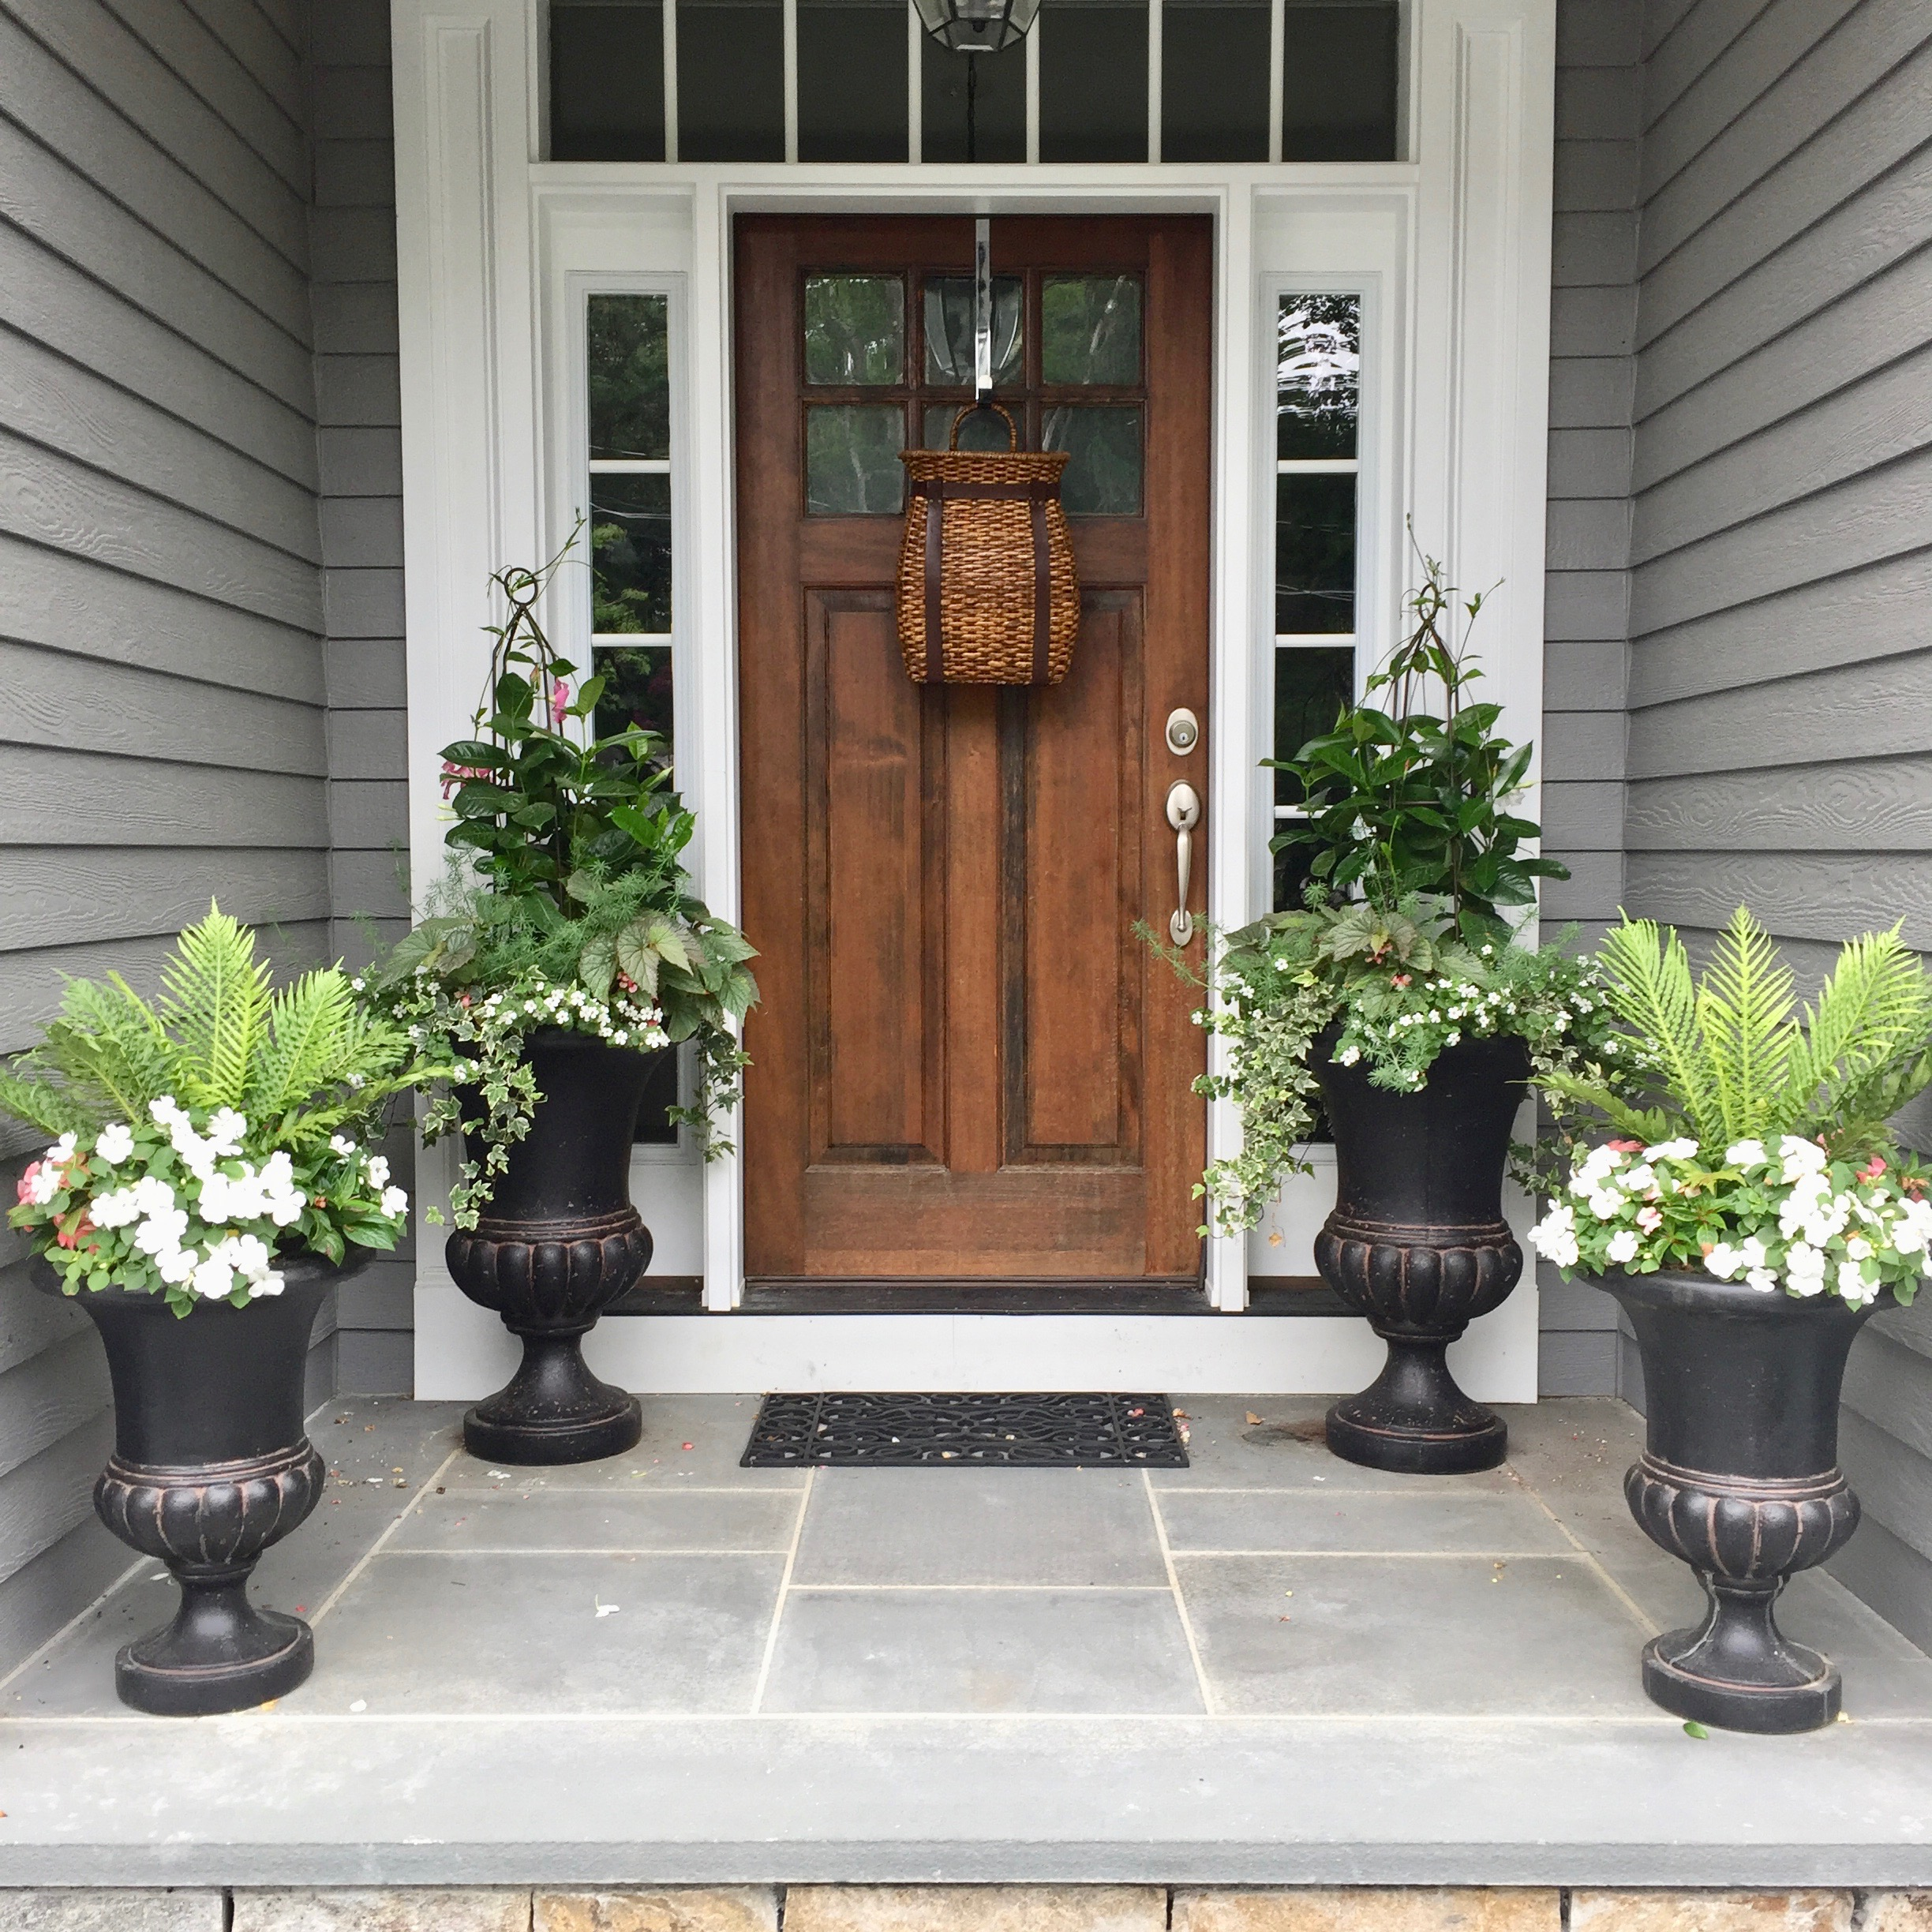 Entryway flanked by containers.